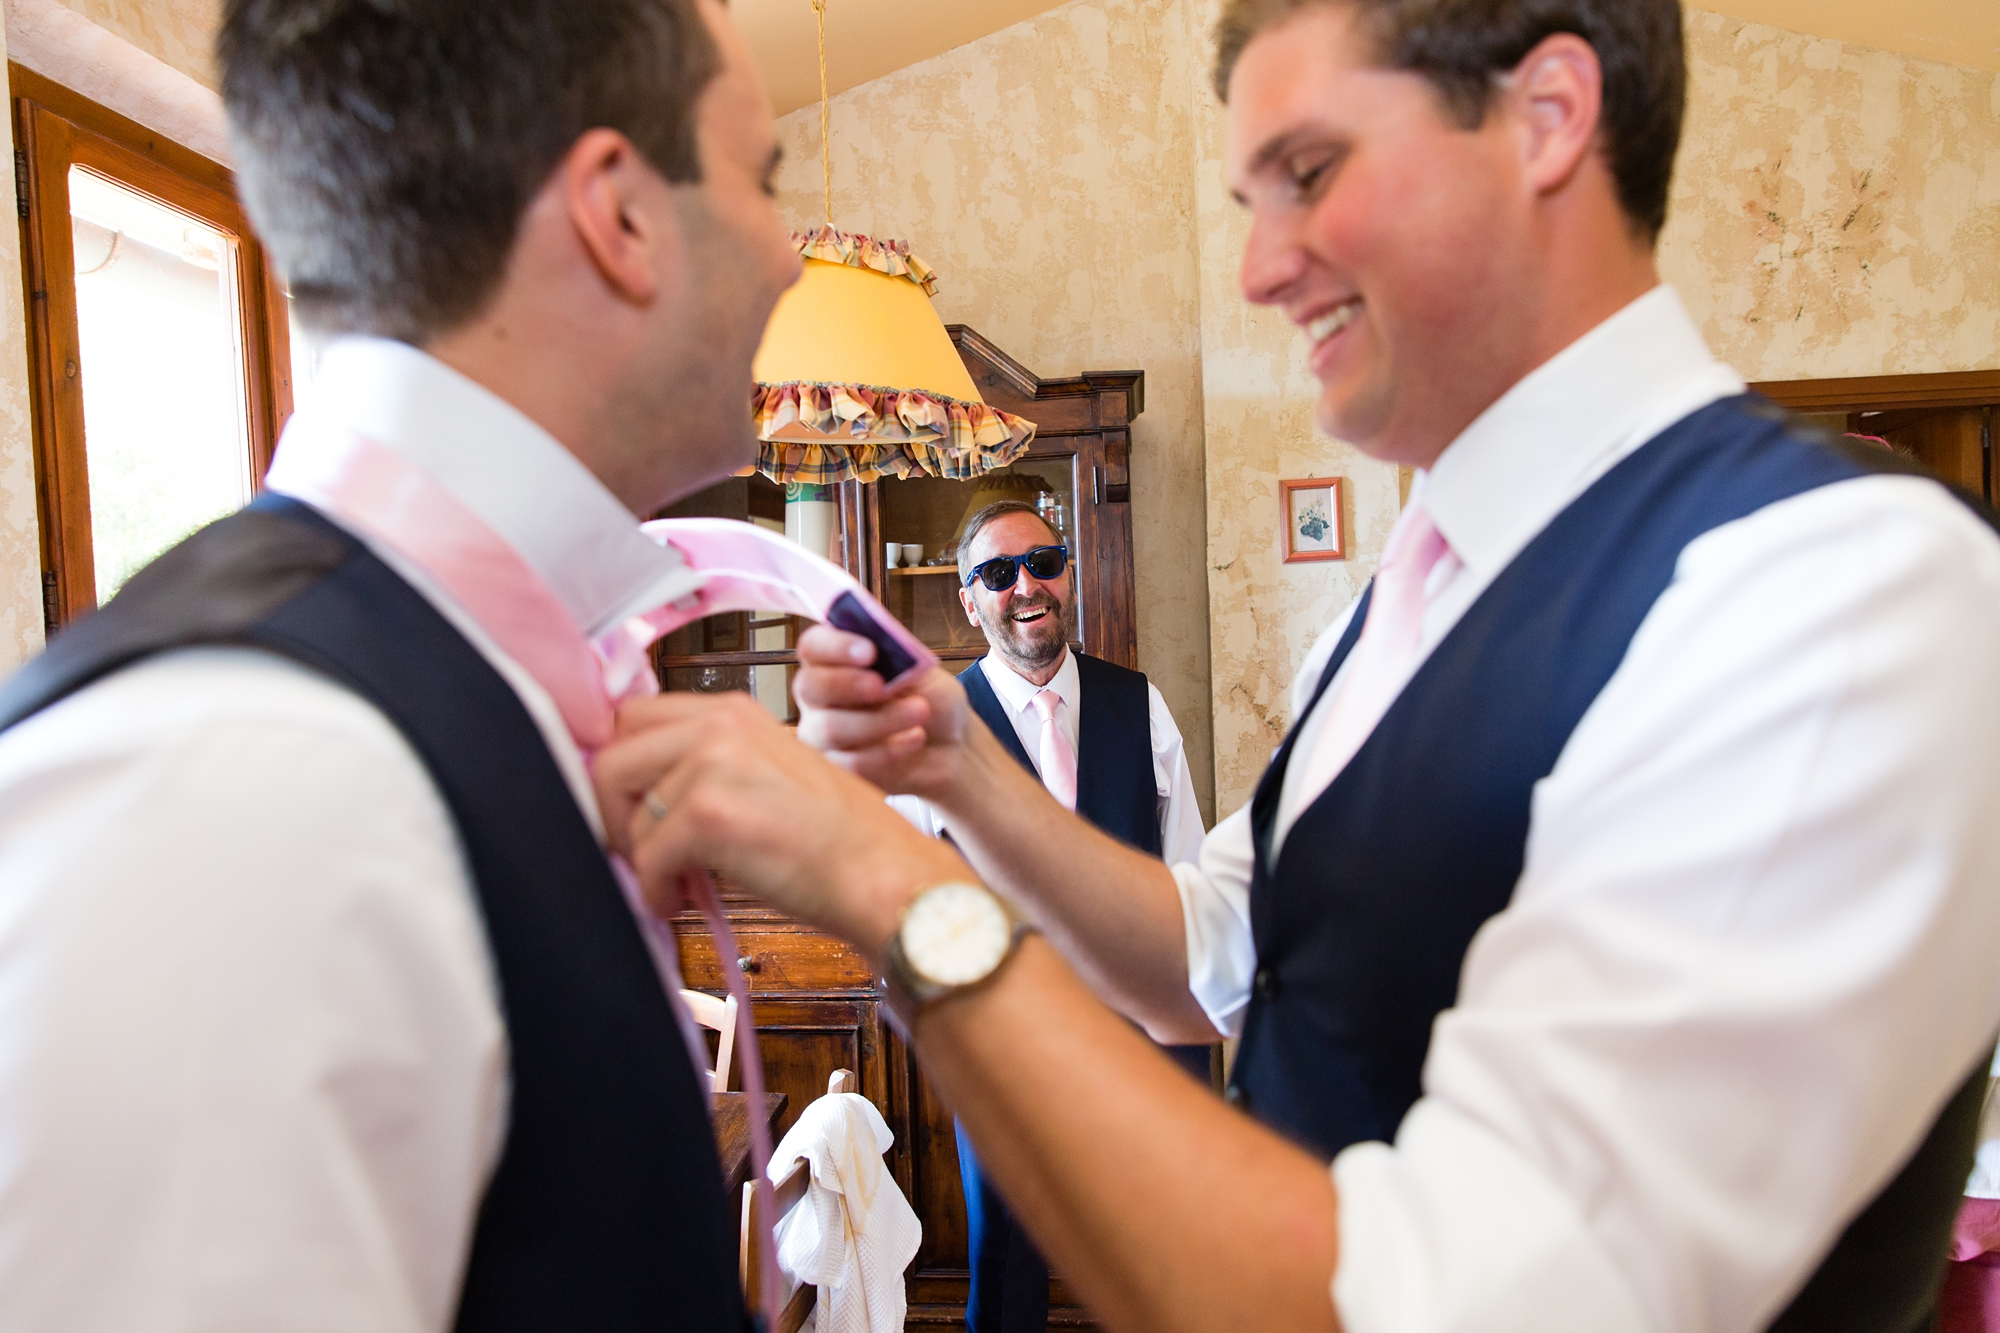 Groom preparation pink ties